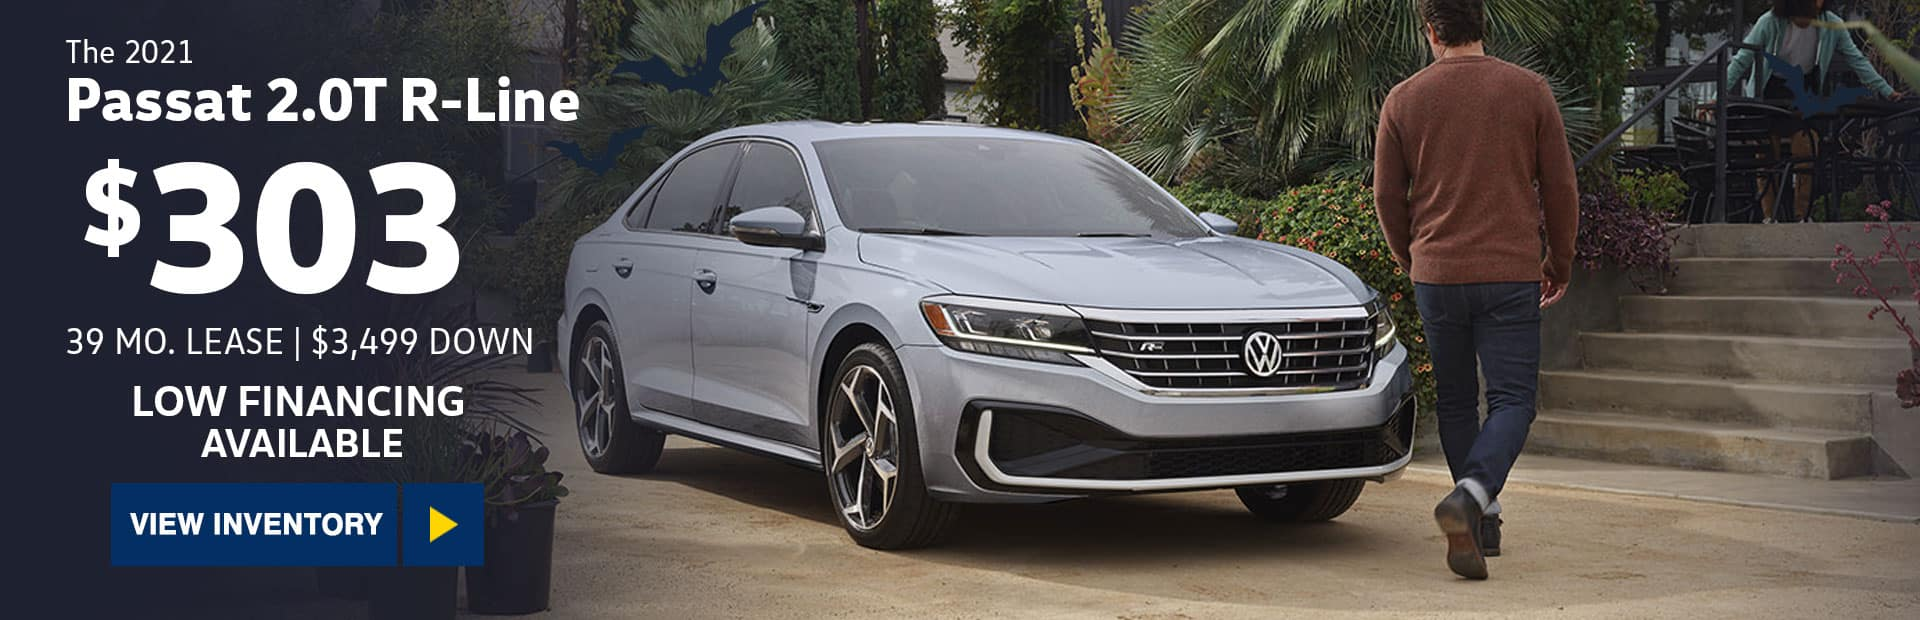 new 2021 vw passat r line lease special for sale in glendale california